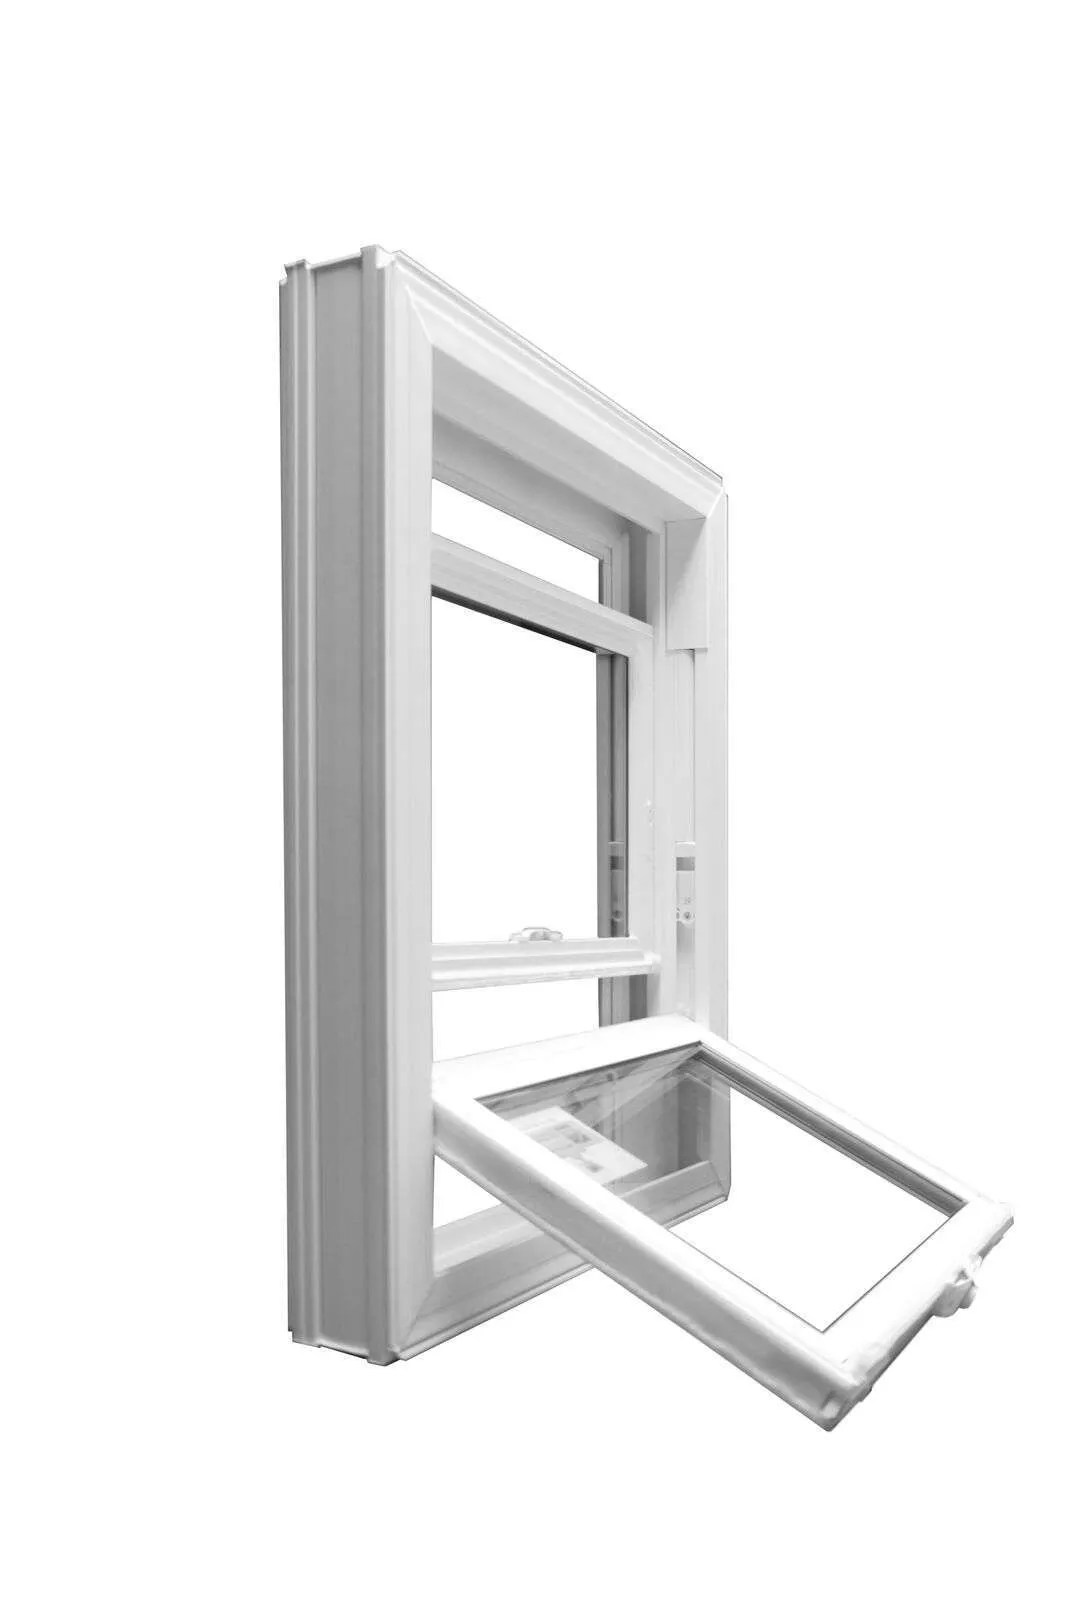 Farley Window Double Single Hung